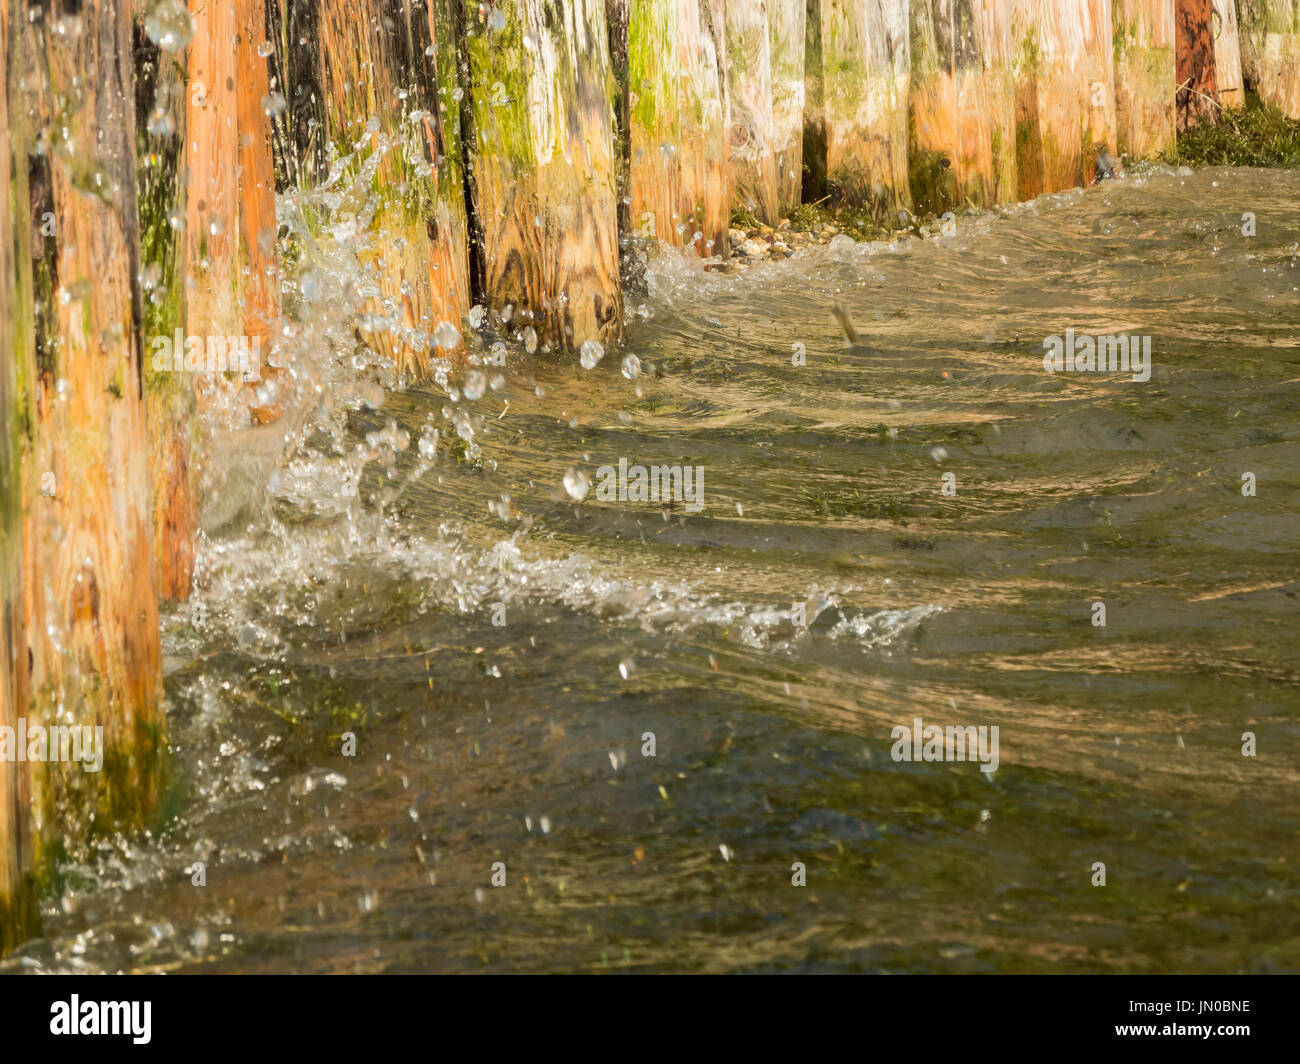 Close-up water to a wooden shore attachment at the Lake Caldaro. - Stock Image